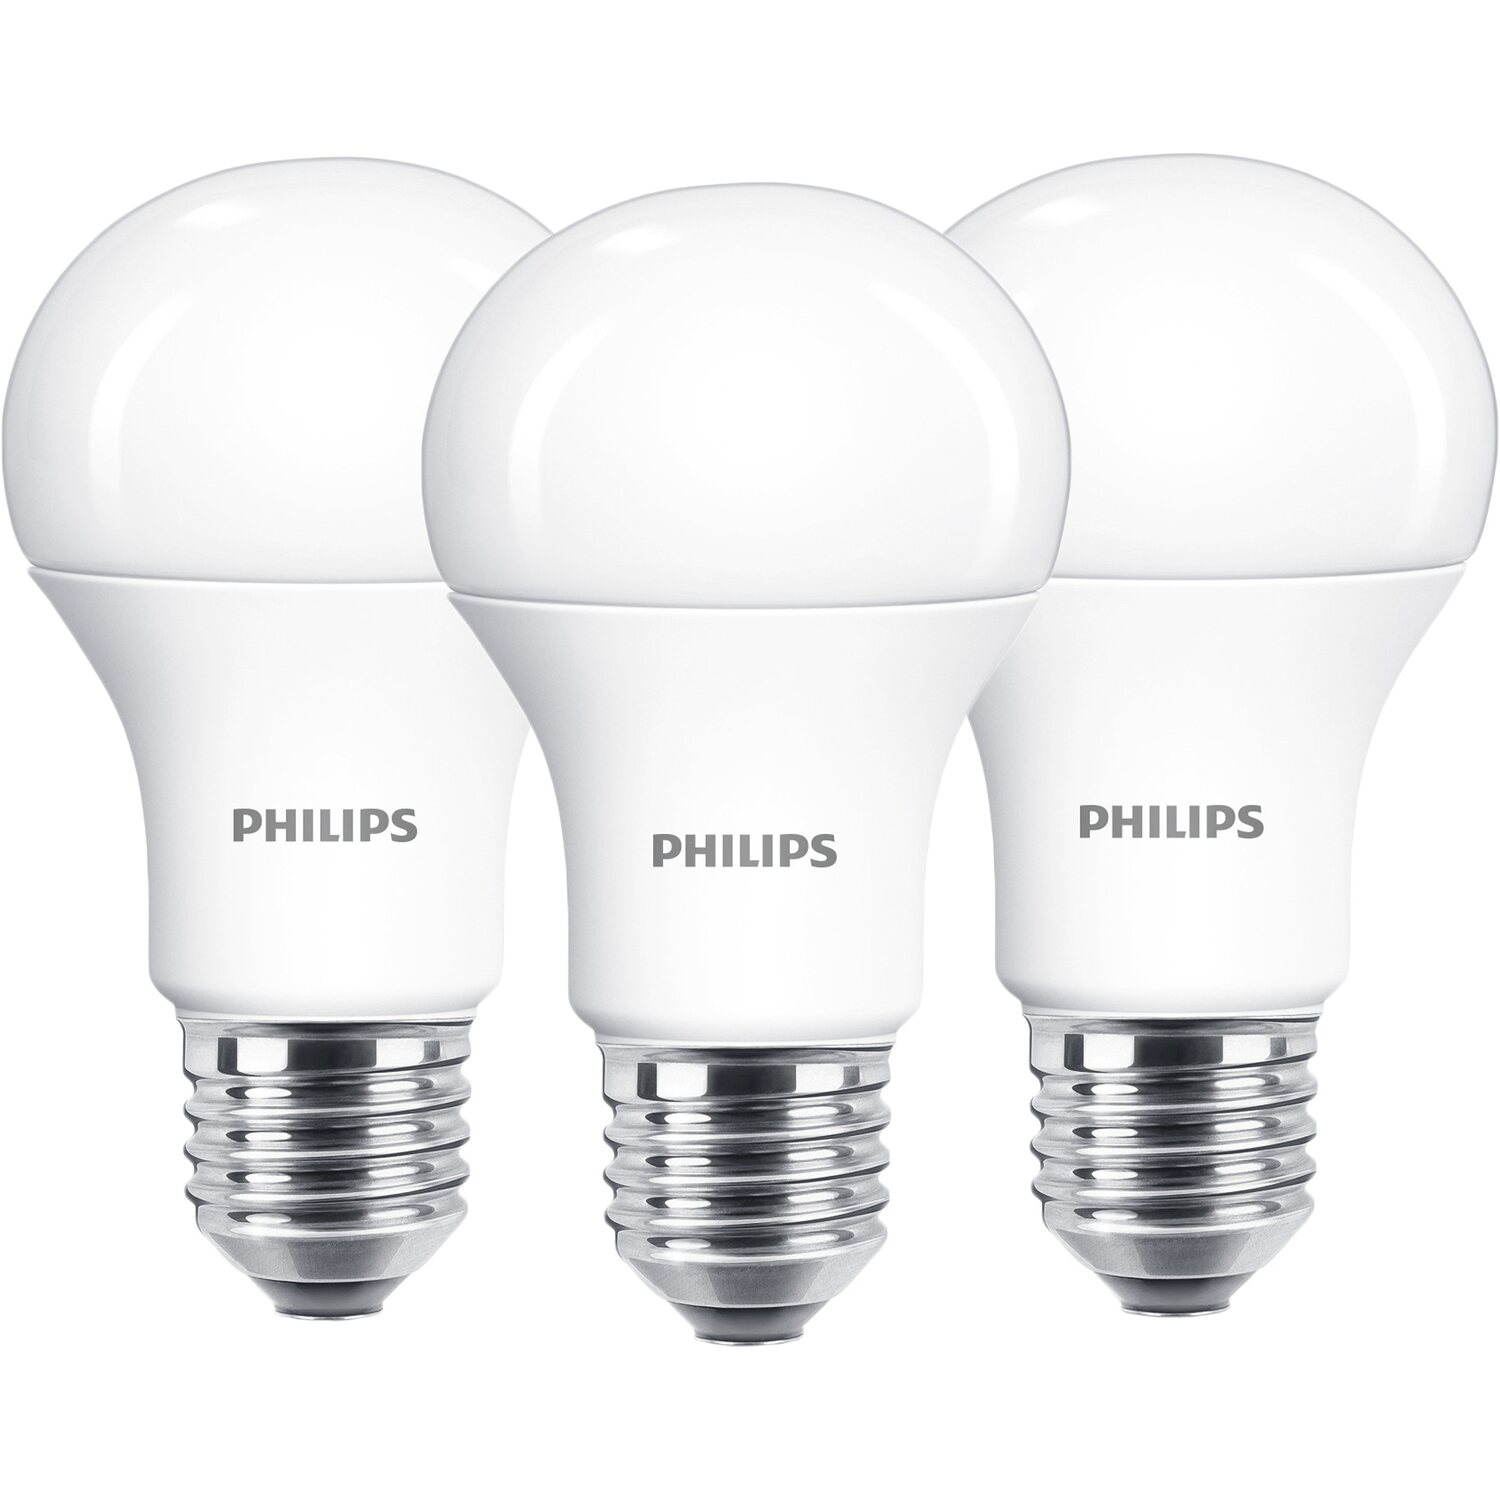 philips led leuchtmittel gl hlampenform e27 13 w 1521 lm warm 3er pack eek a kaufen bei obi. Black Bedroom Furniture Sets. Home Design Ideas